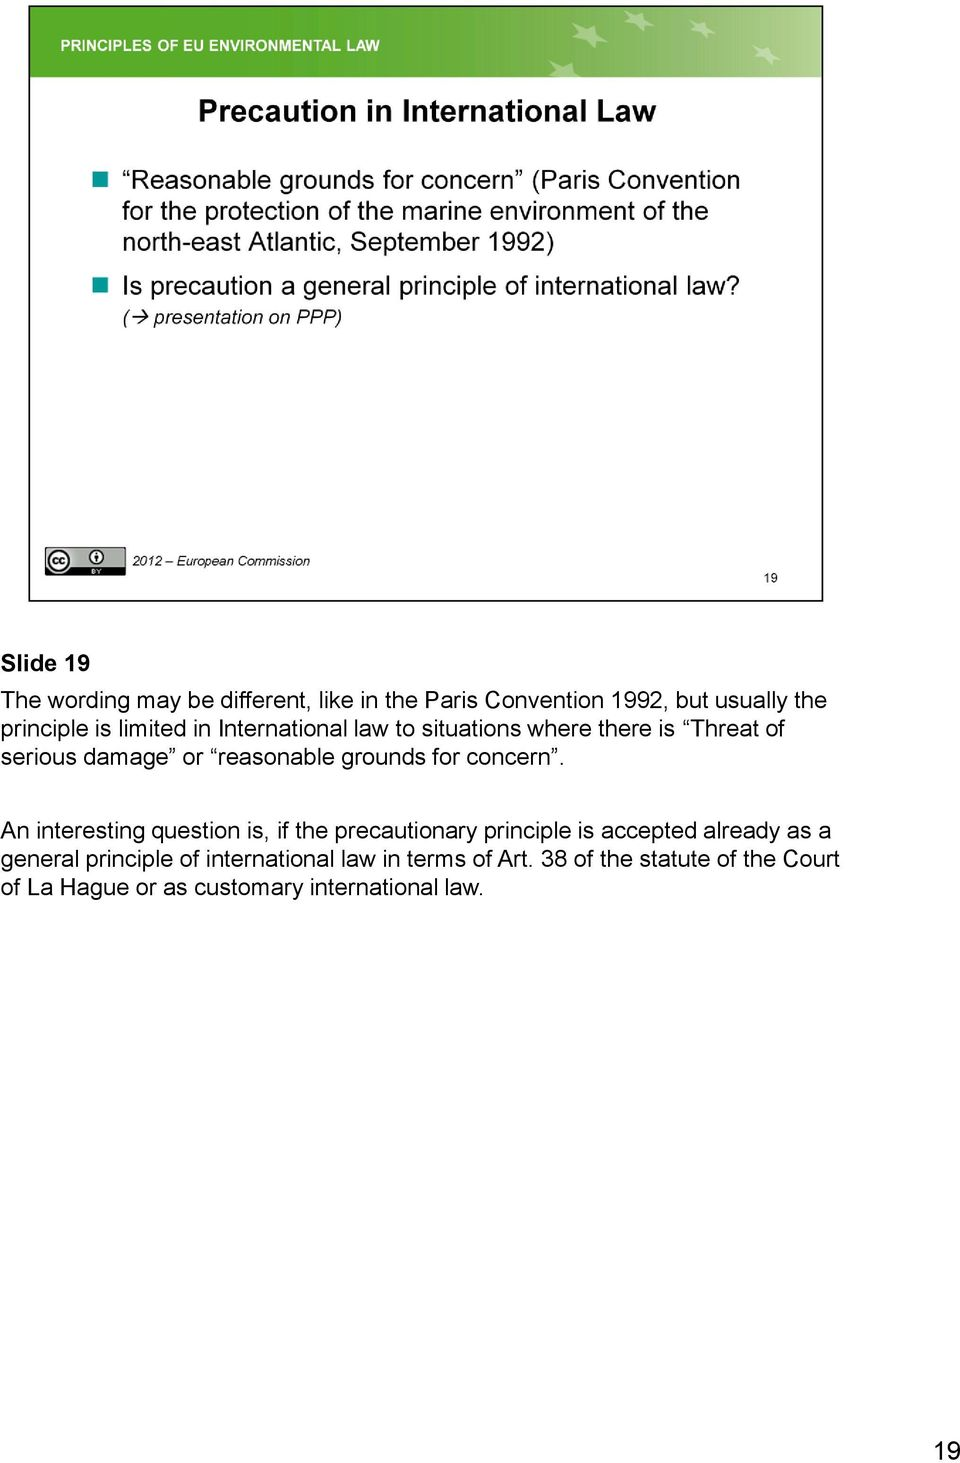 An interesting question is, if the precautionary principle is accepted already as a general principle of